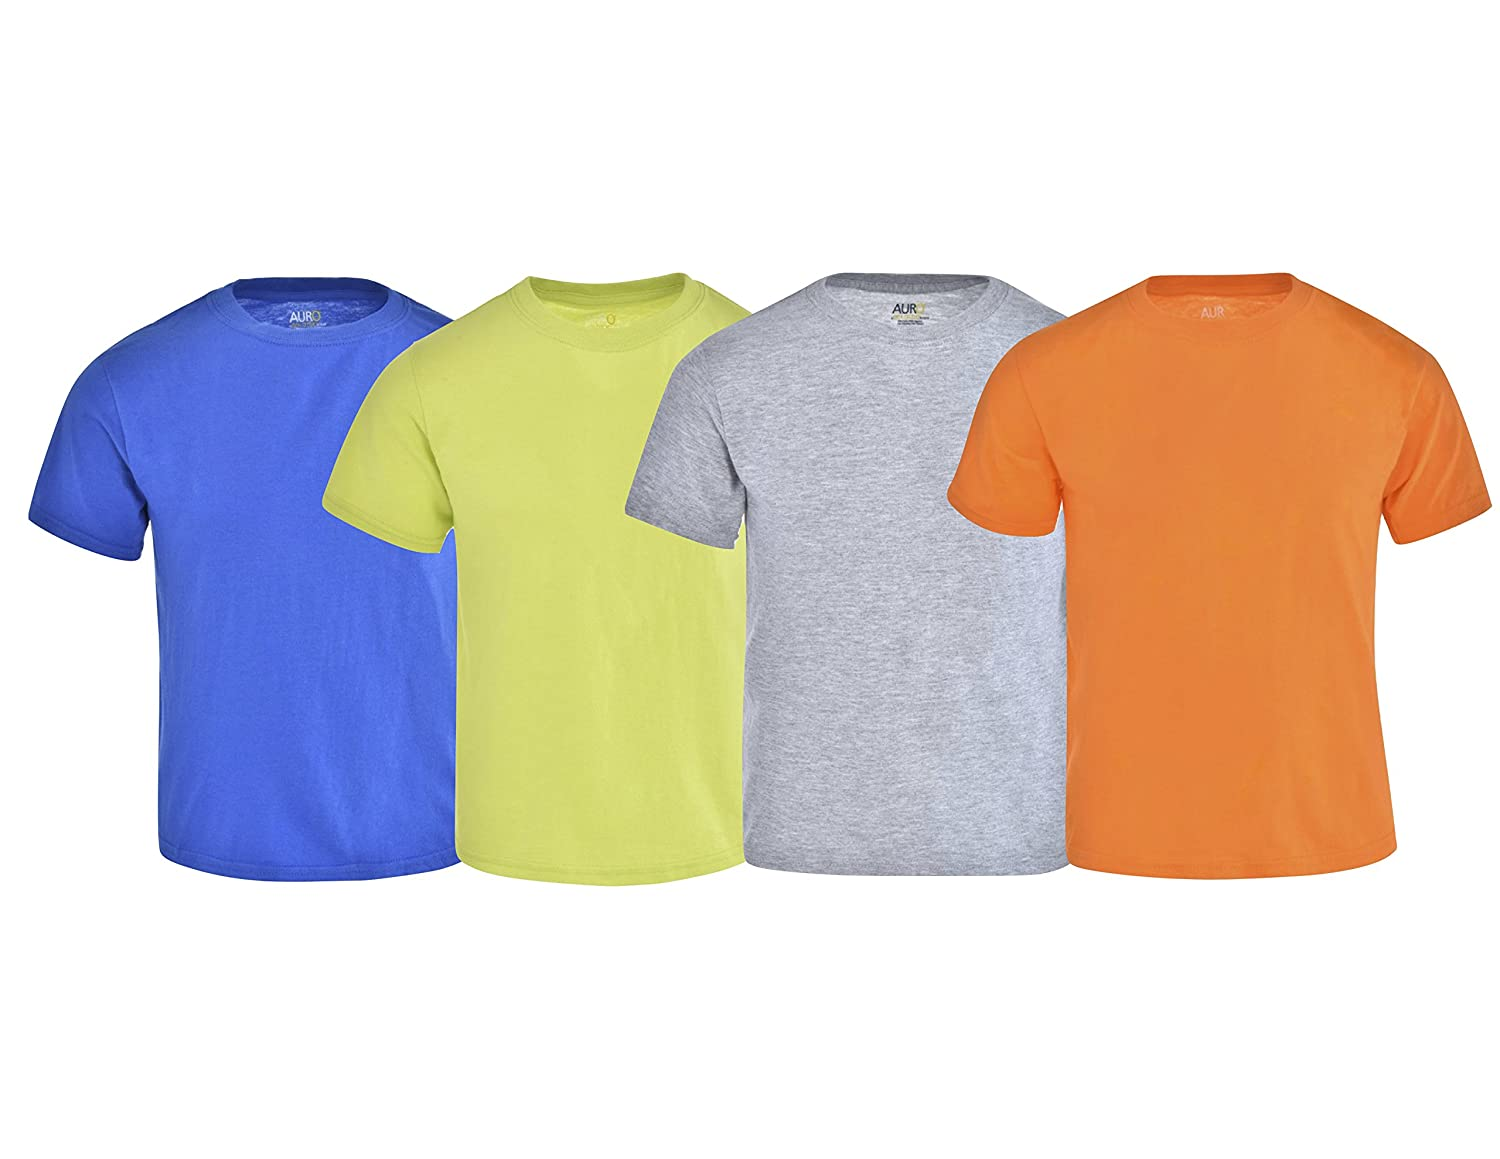 Auro Boys Color Crew Neck Tee, 4 Pack(a Gold Toe Brand)